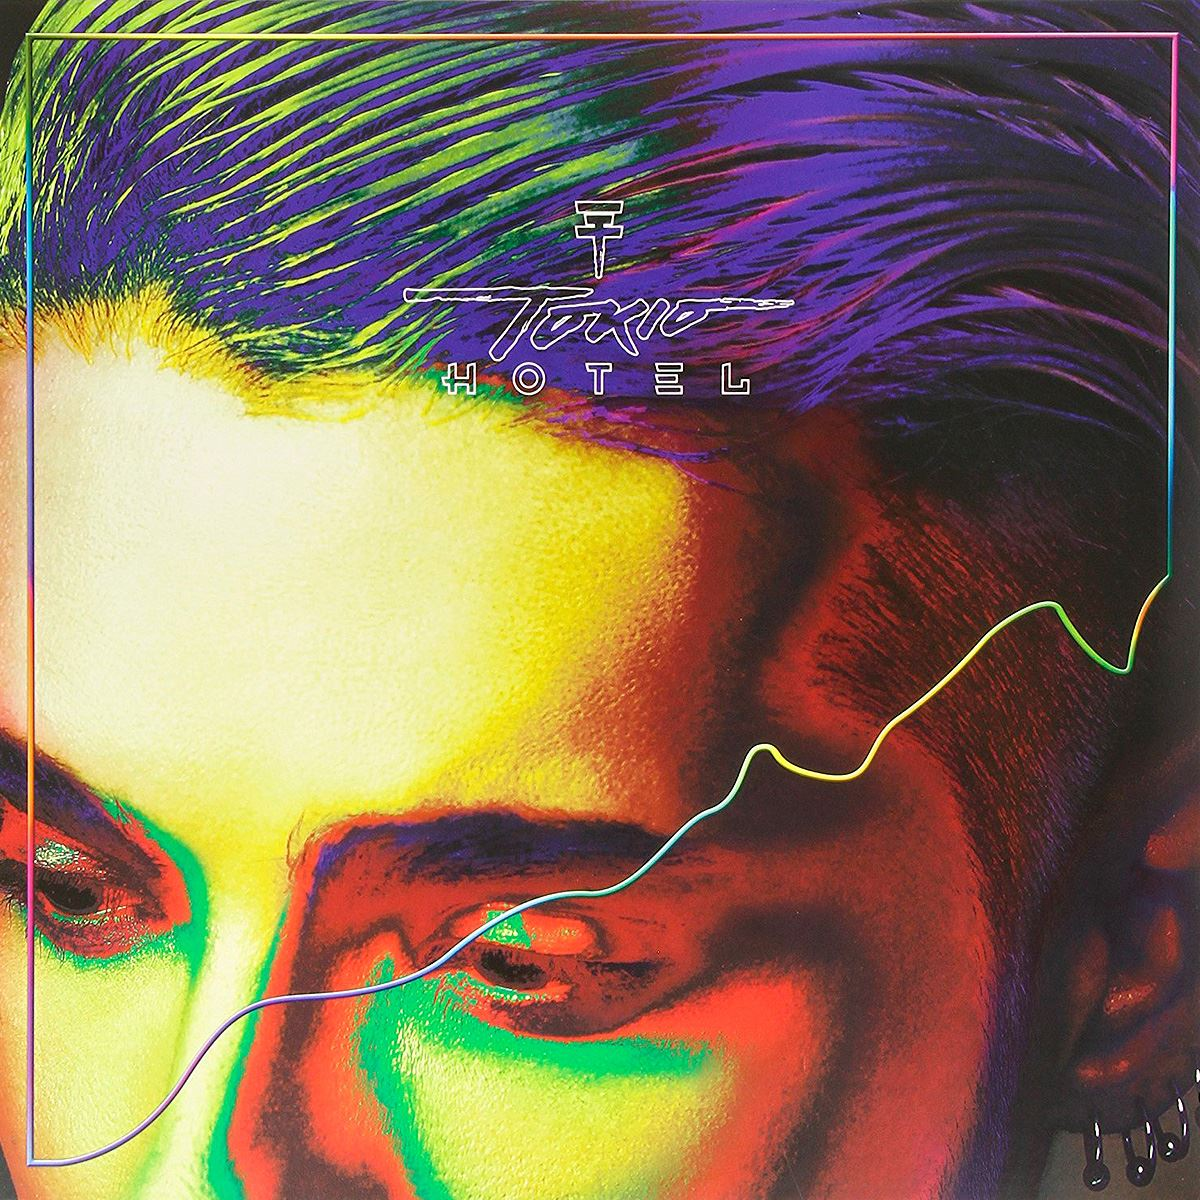 Lp tokio hotel kings of suburbia  - Sanborns